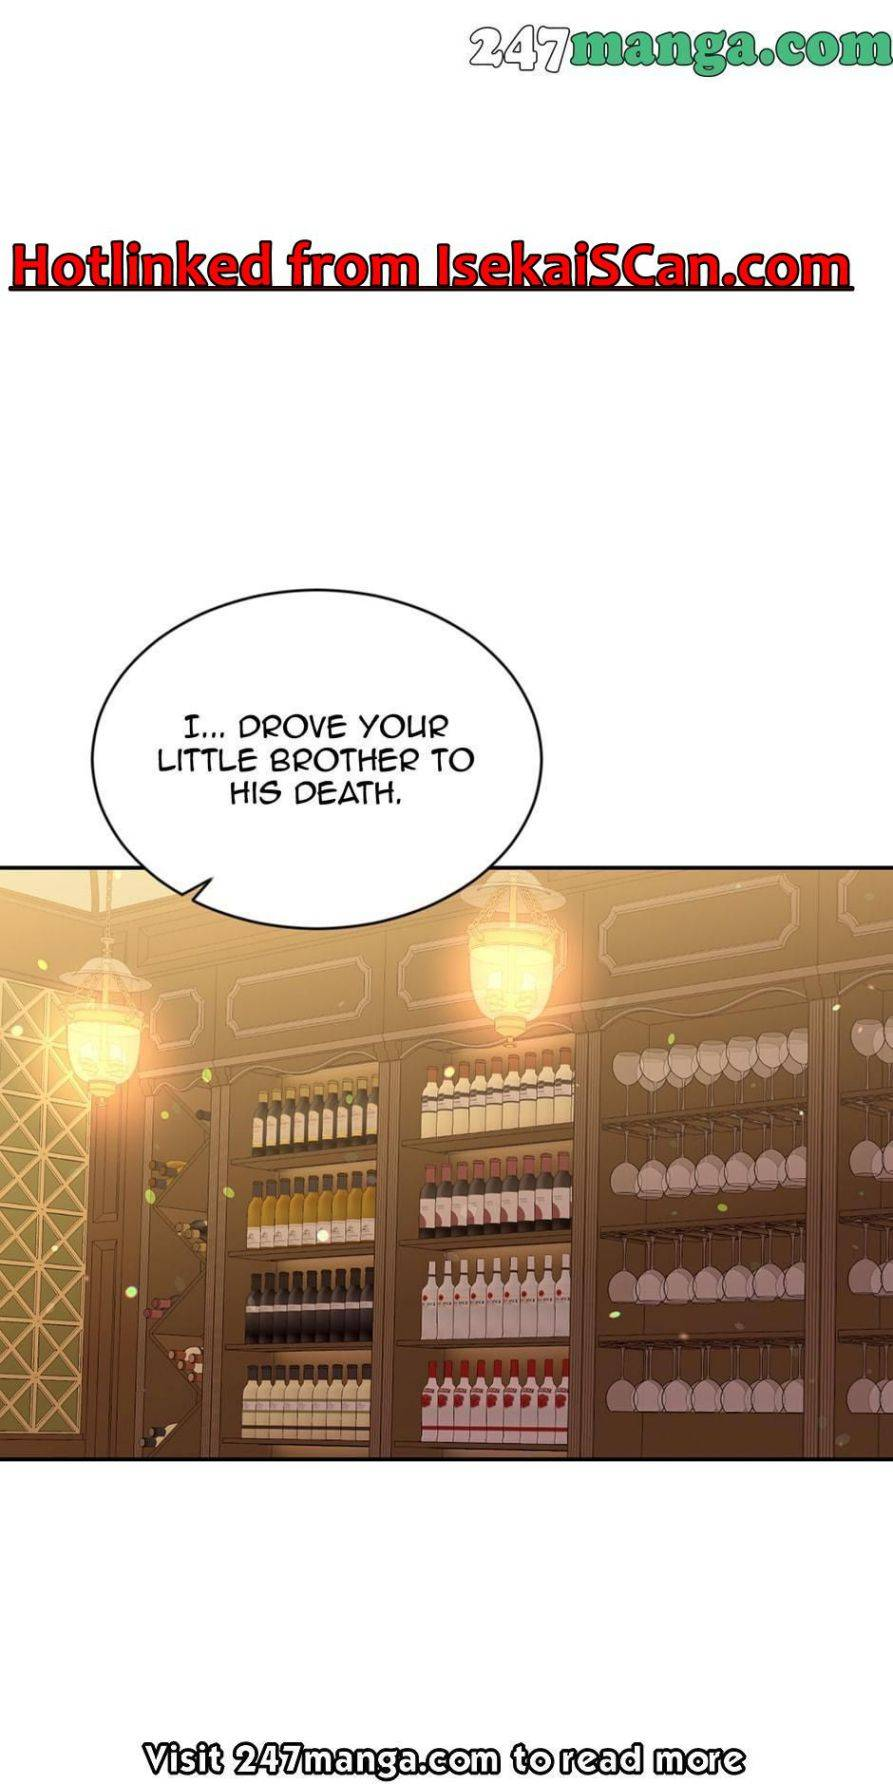 The Goal Is To Become A Gold Spoon So I Need To Be Completely Invulnerable - chapter 51 - #2